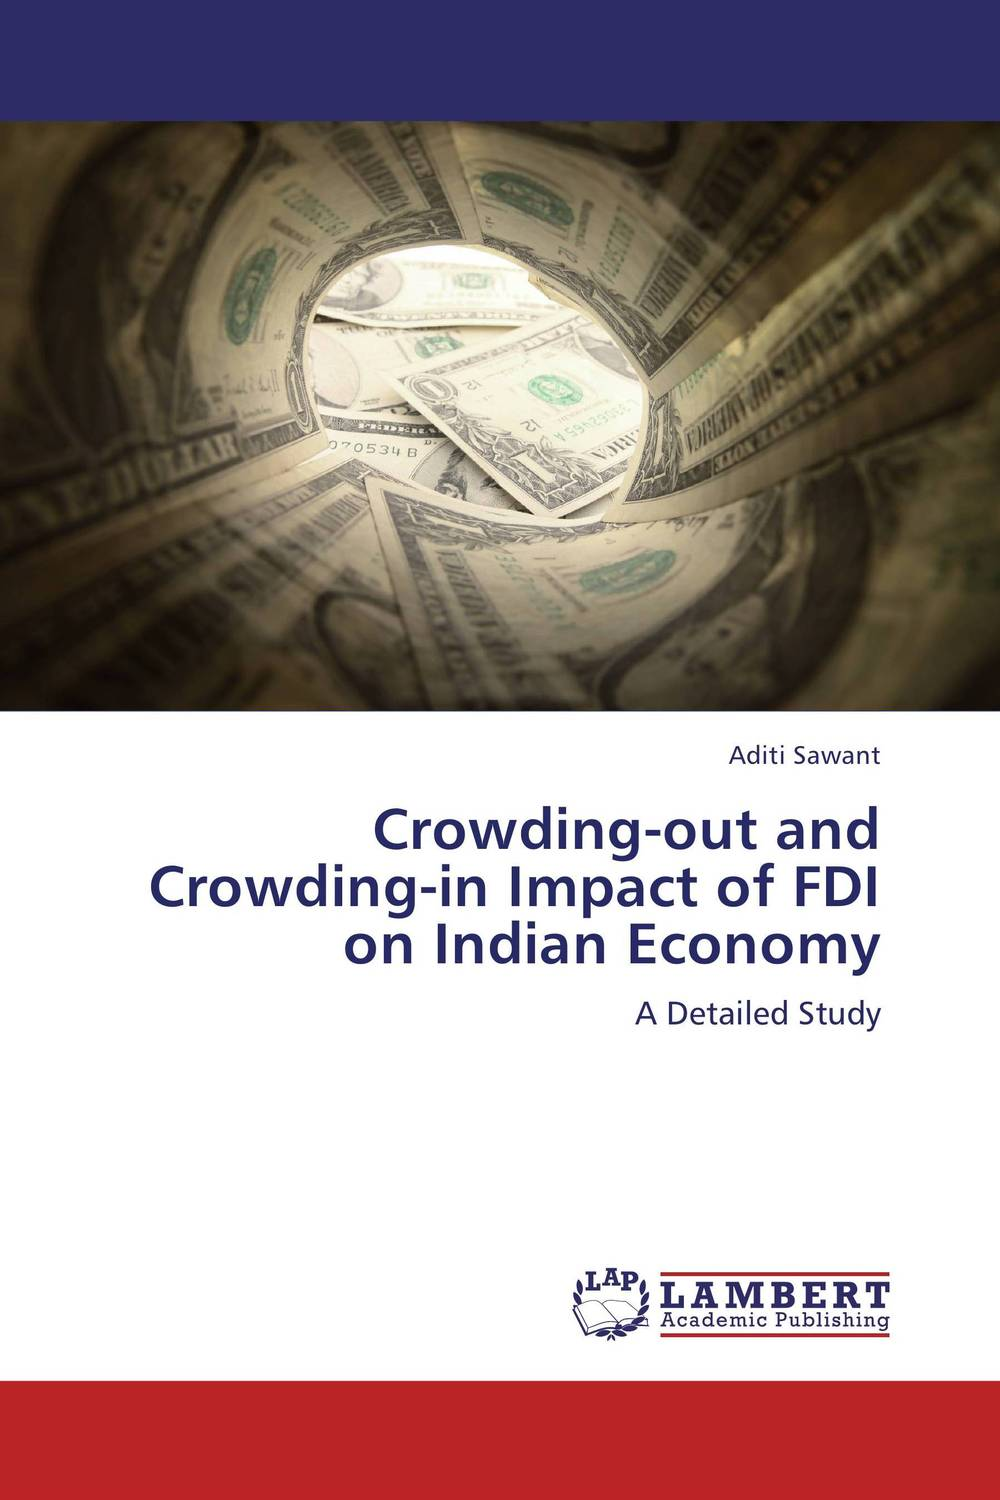 Crowding-out and Crowding-in Impact of FDI on Indian Economy abhaya kumar naik socio economic impact of industrialisation